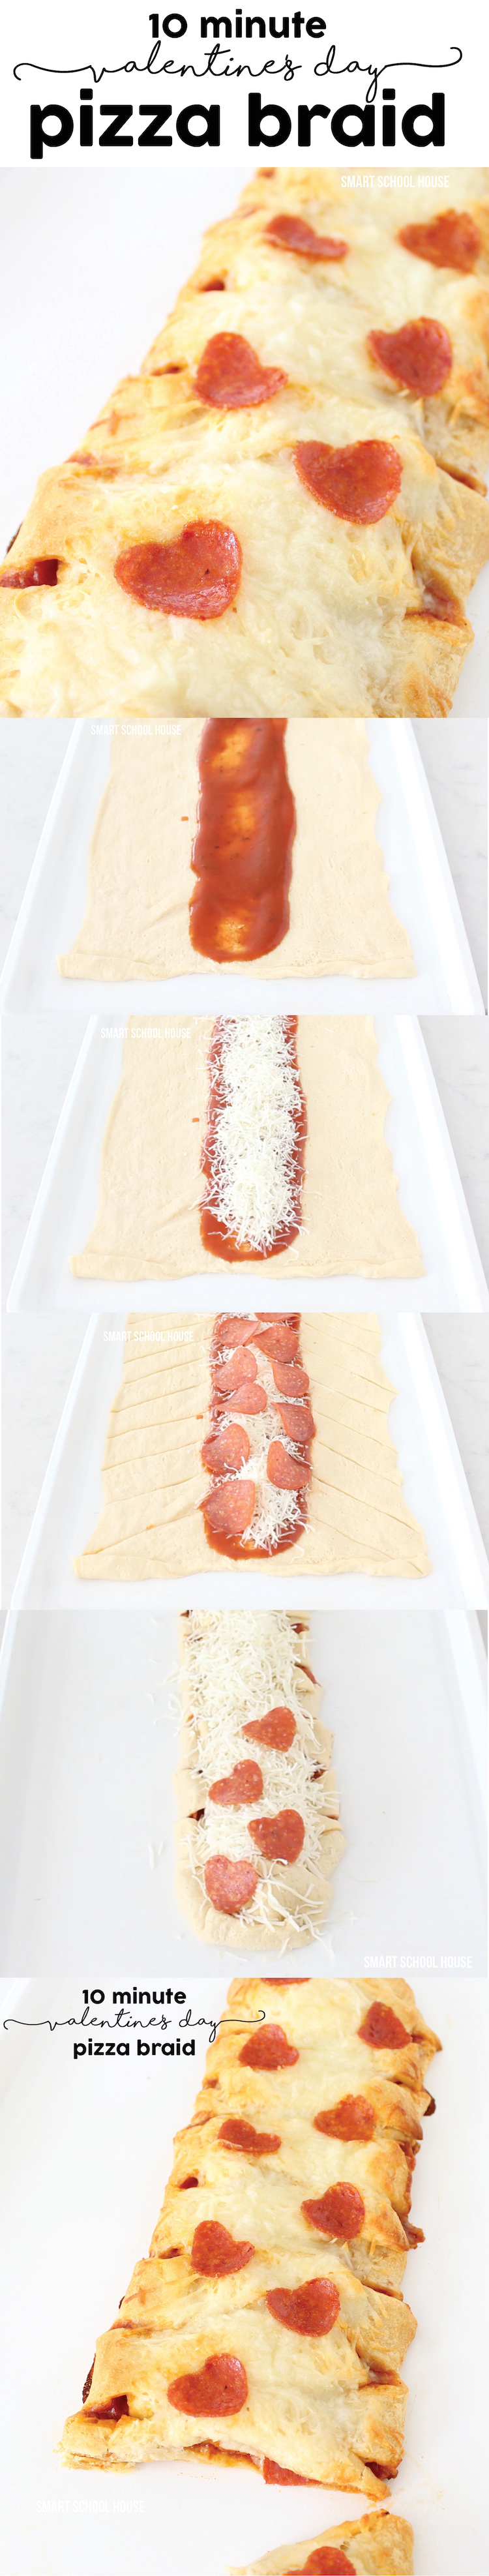 How to make a Valentine's Day Pizza Braid with heart pepperoni pieces - so easy! Must try.